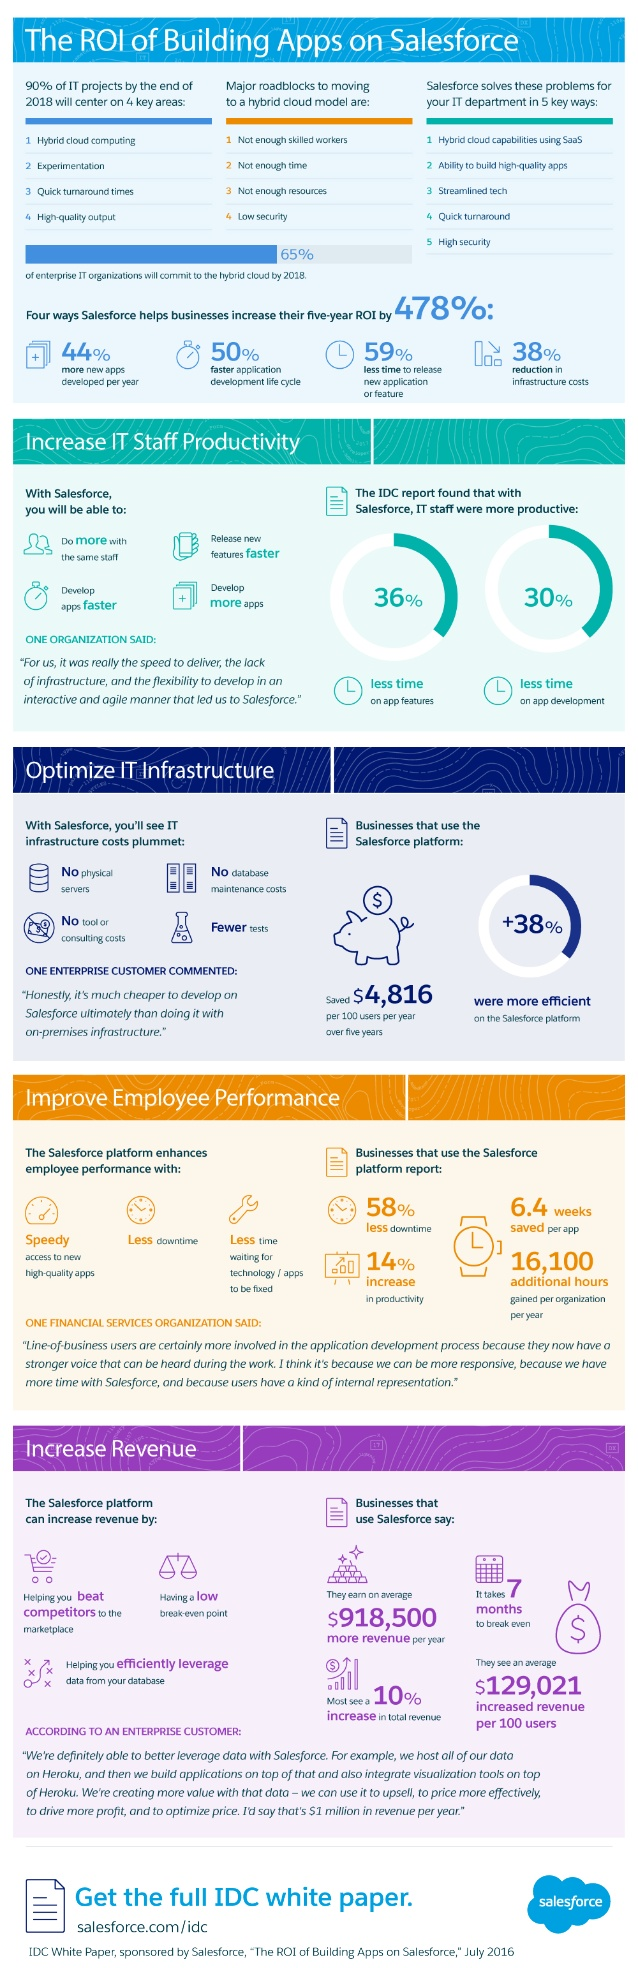 The ROI of Building Apps on Salesforce